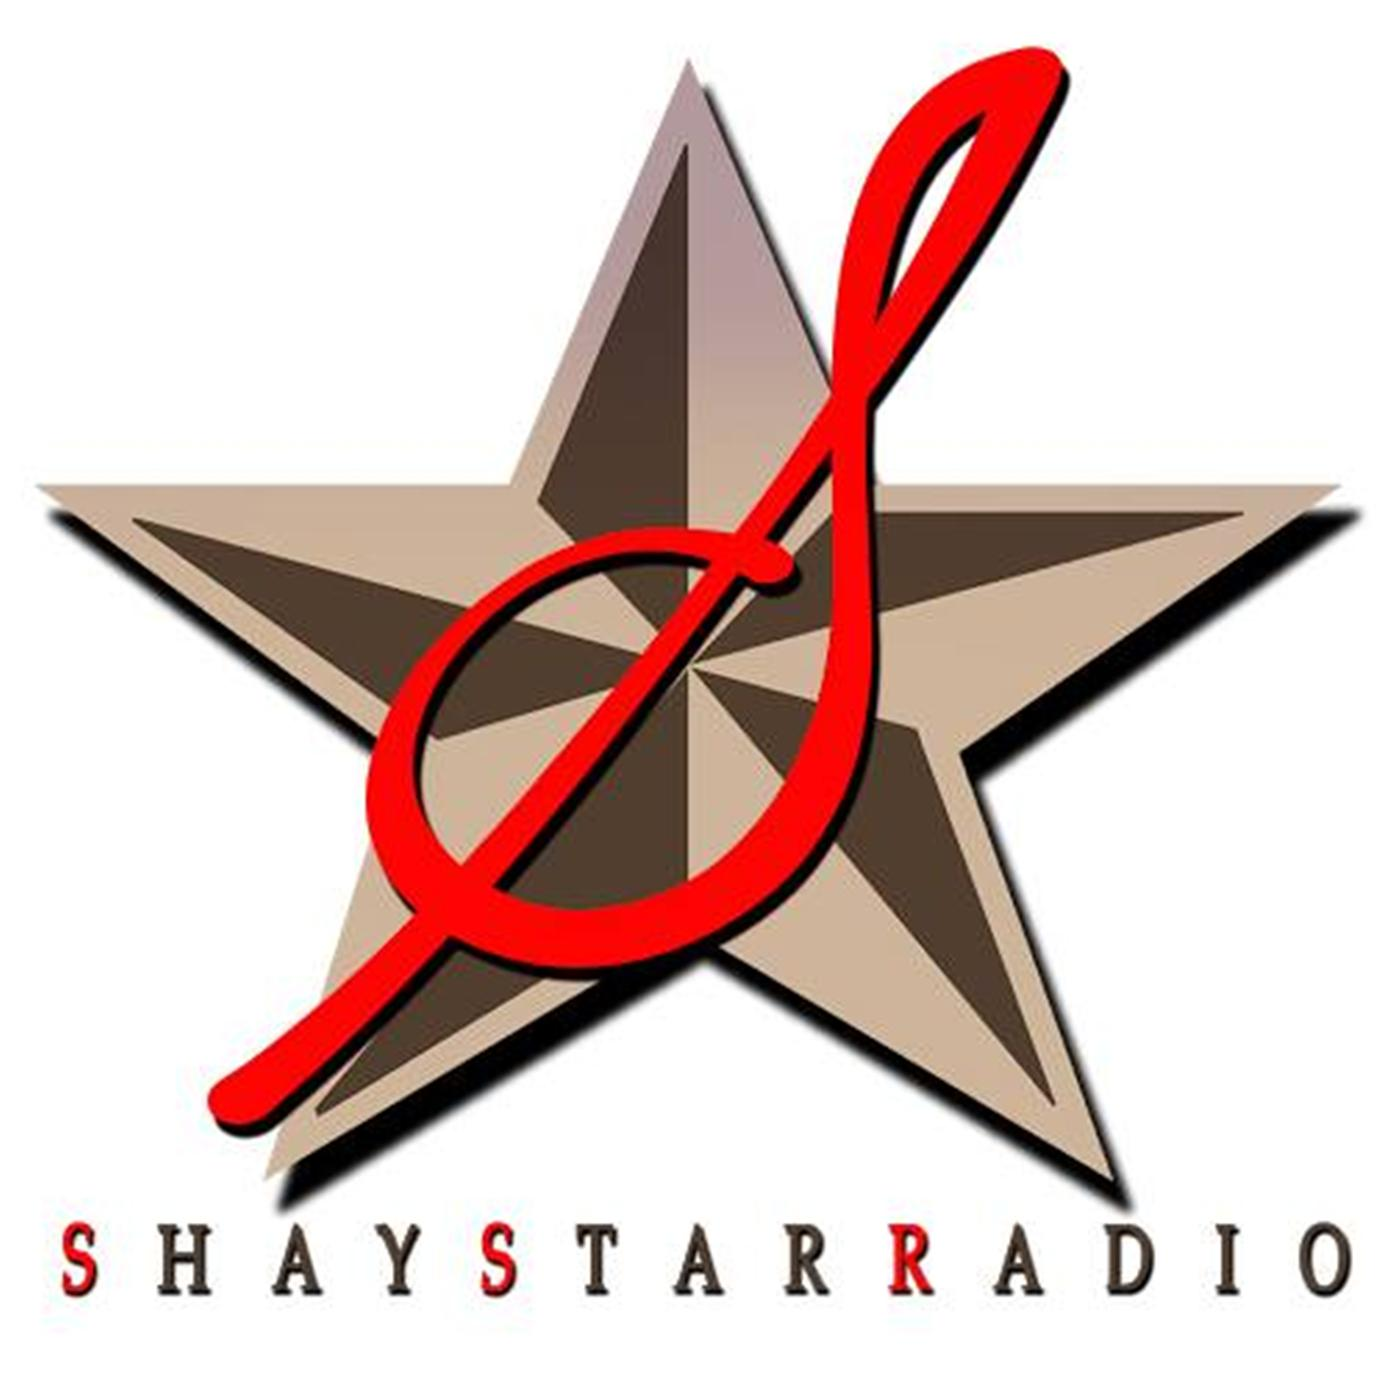 Shay Star Radio